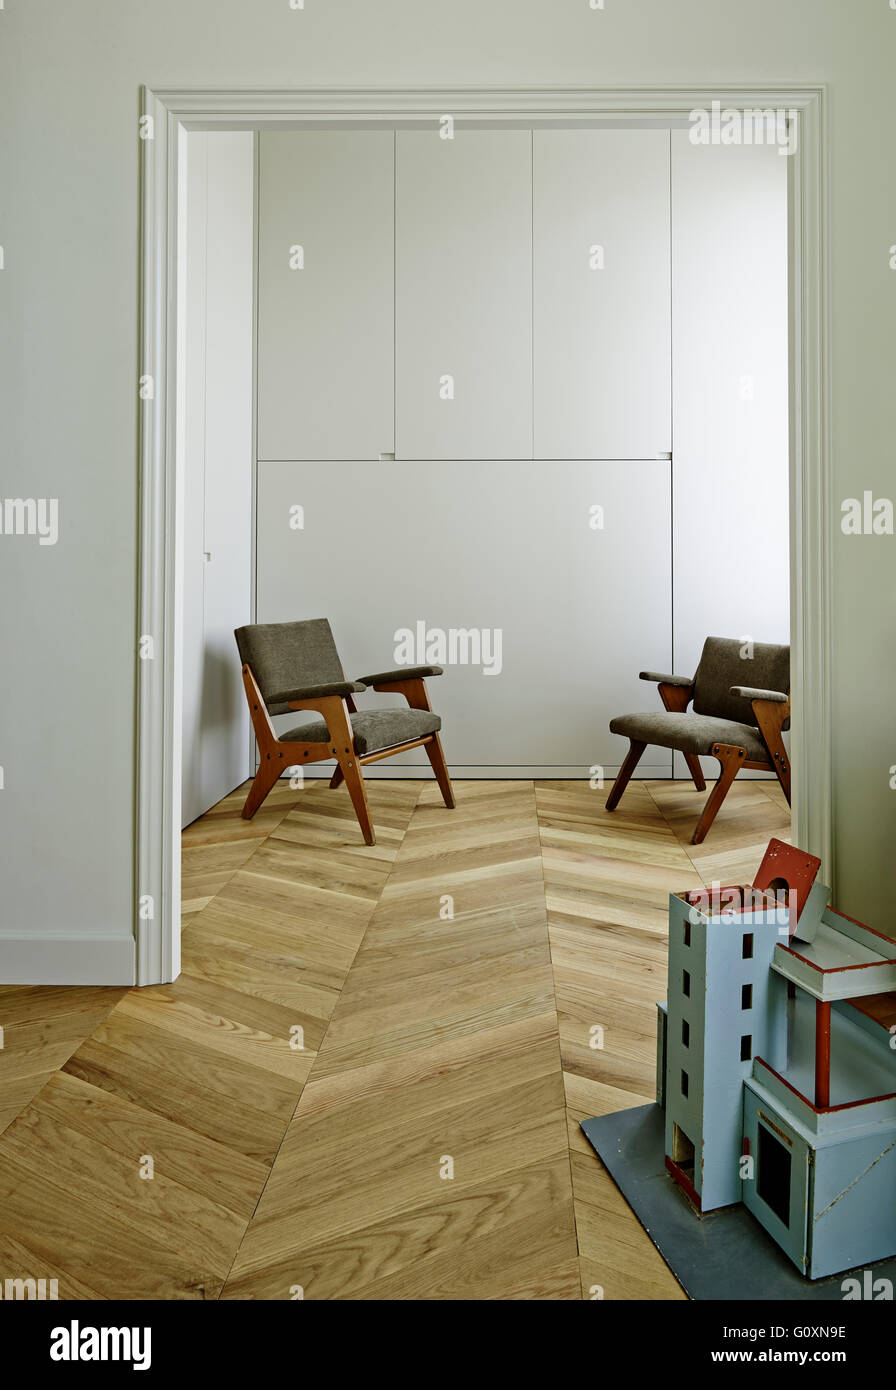 MA Apartment, Barcelona, Spain. Two mid-century chairs caddy cornered against white wall. Wood flooring. - Stock Image